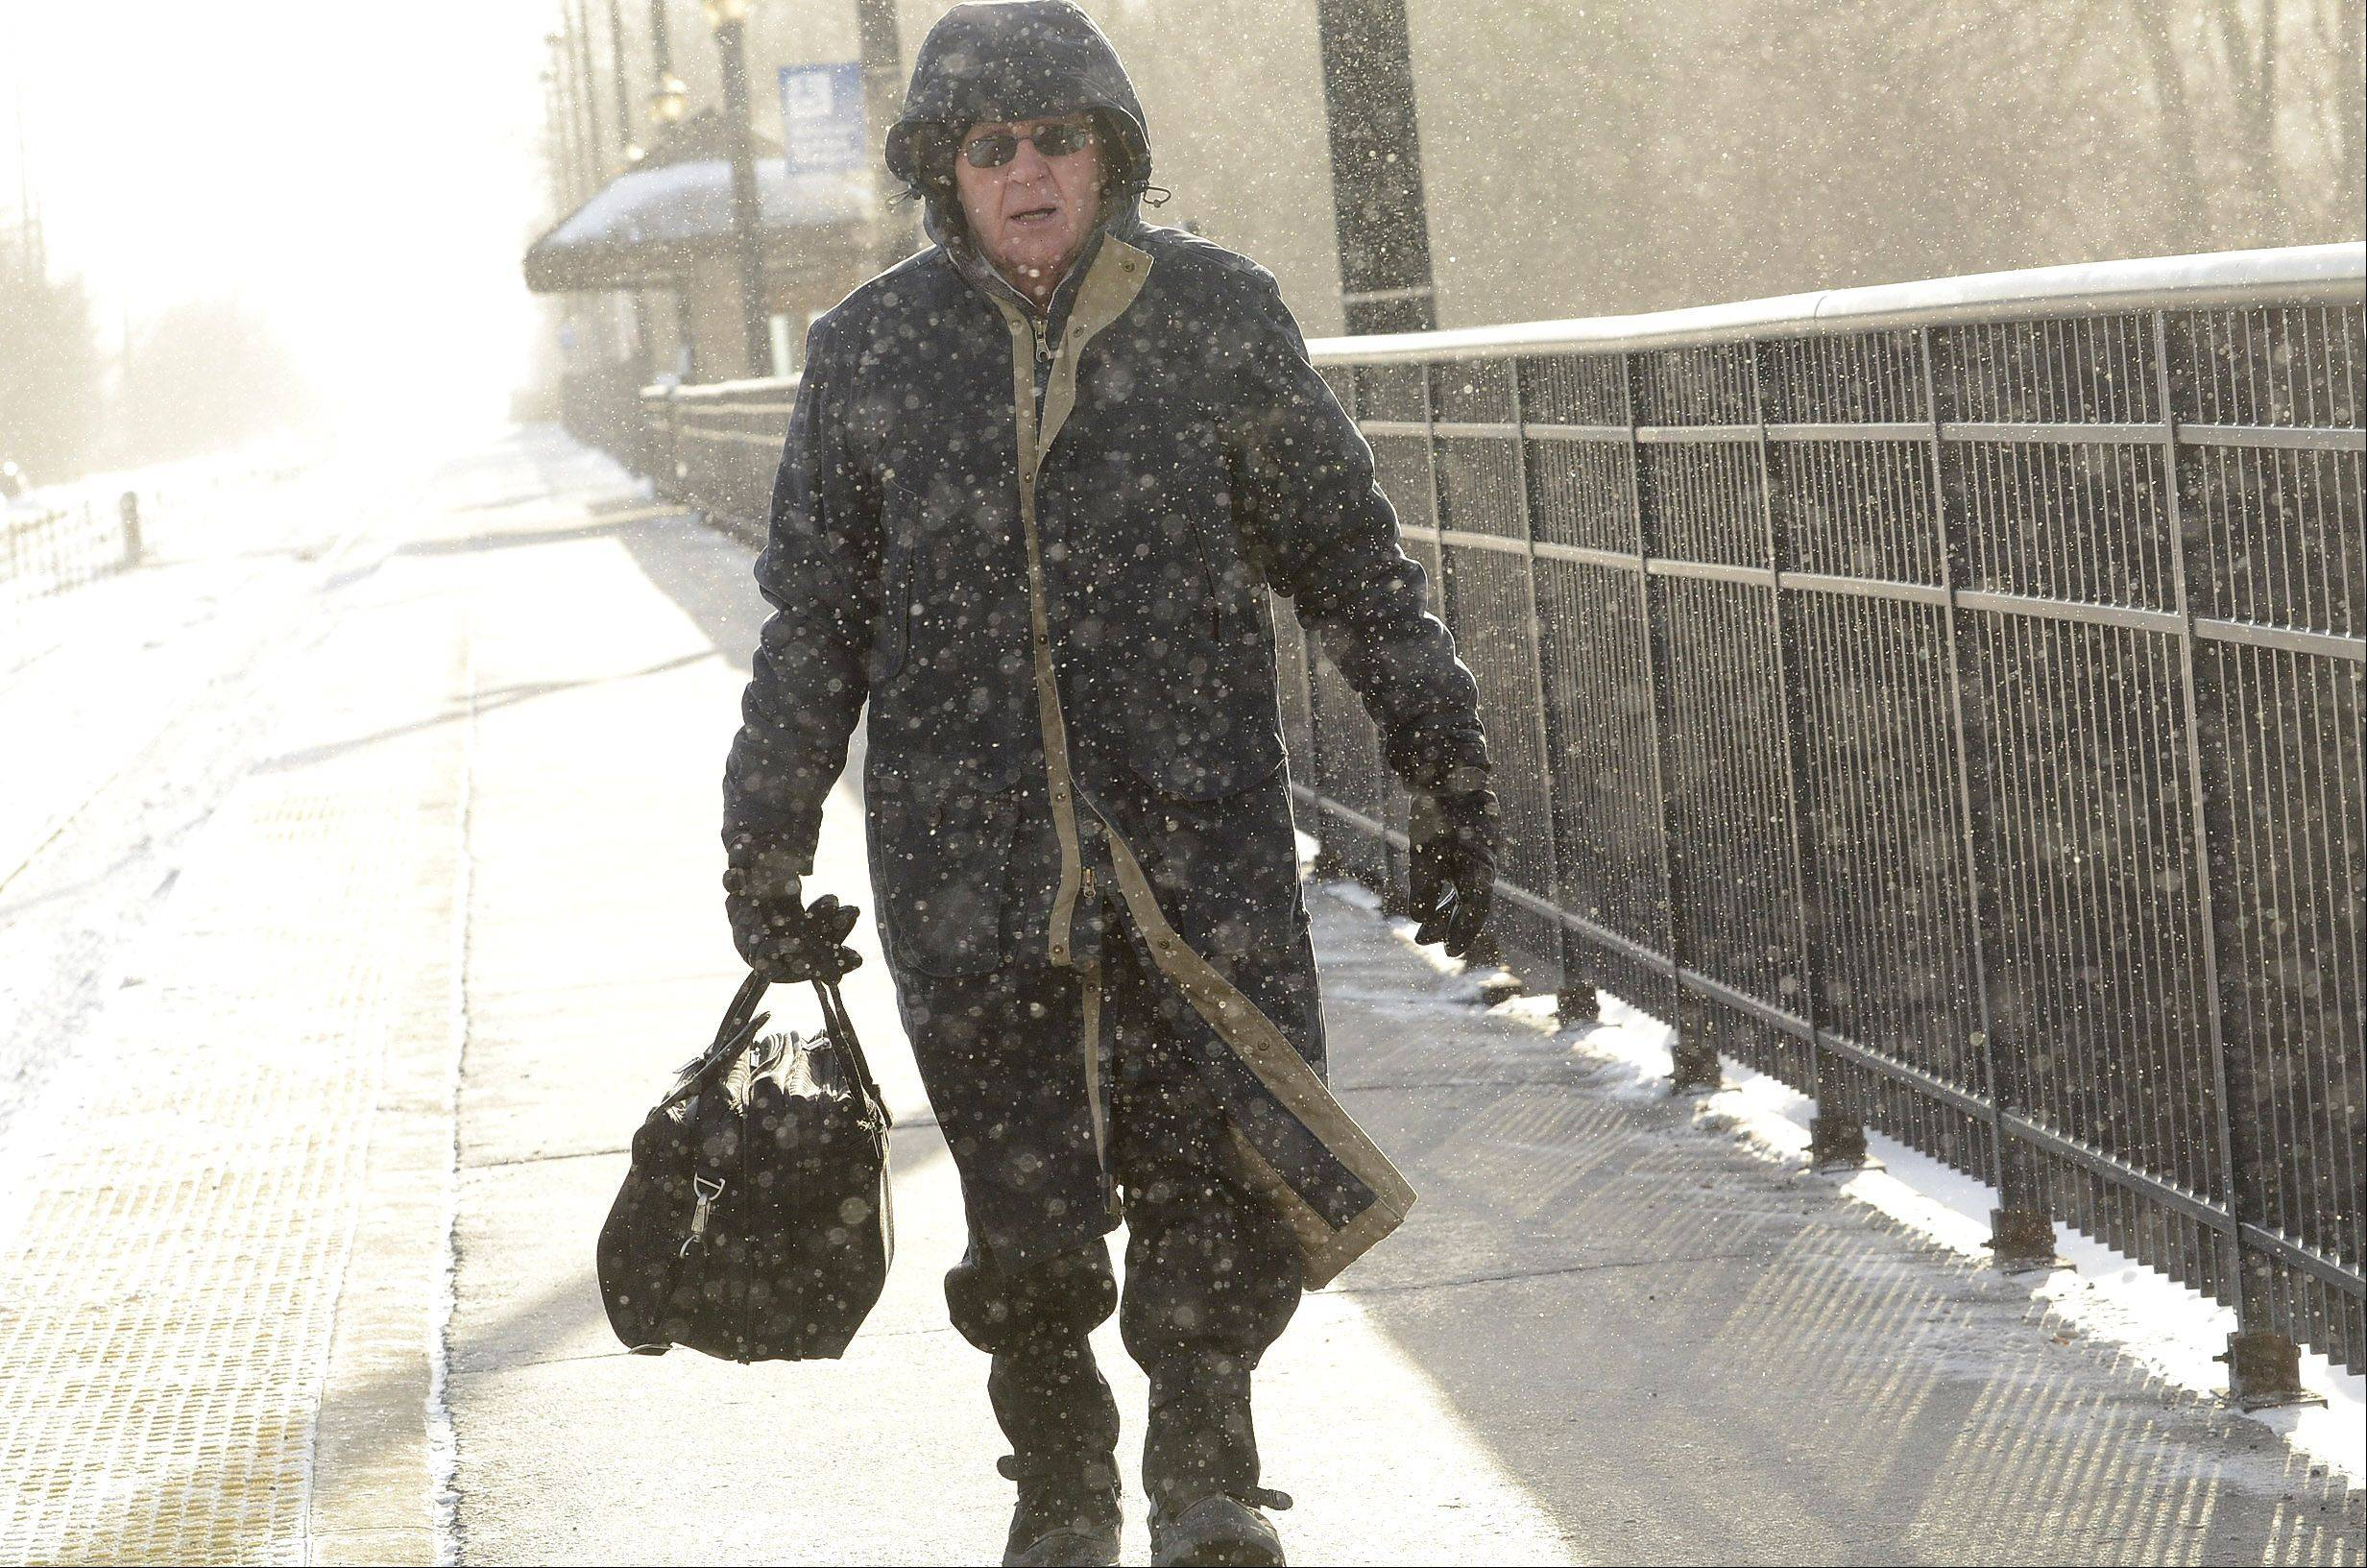 Bob Chwedyk/bchwedyk@dailyherald.comAlan Guernsey of Tower Lakes makes his way in the freezing cold to the Barrington Metra station train platform Thursday morning, on his way to his job in Chicago.